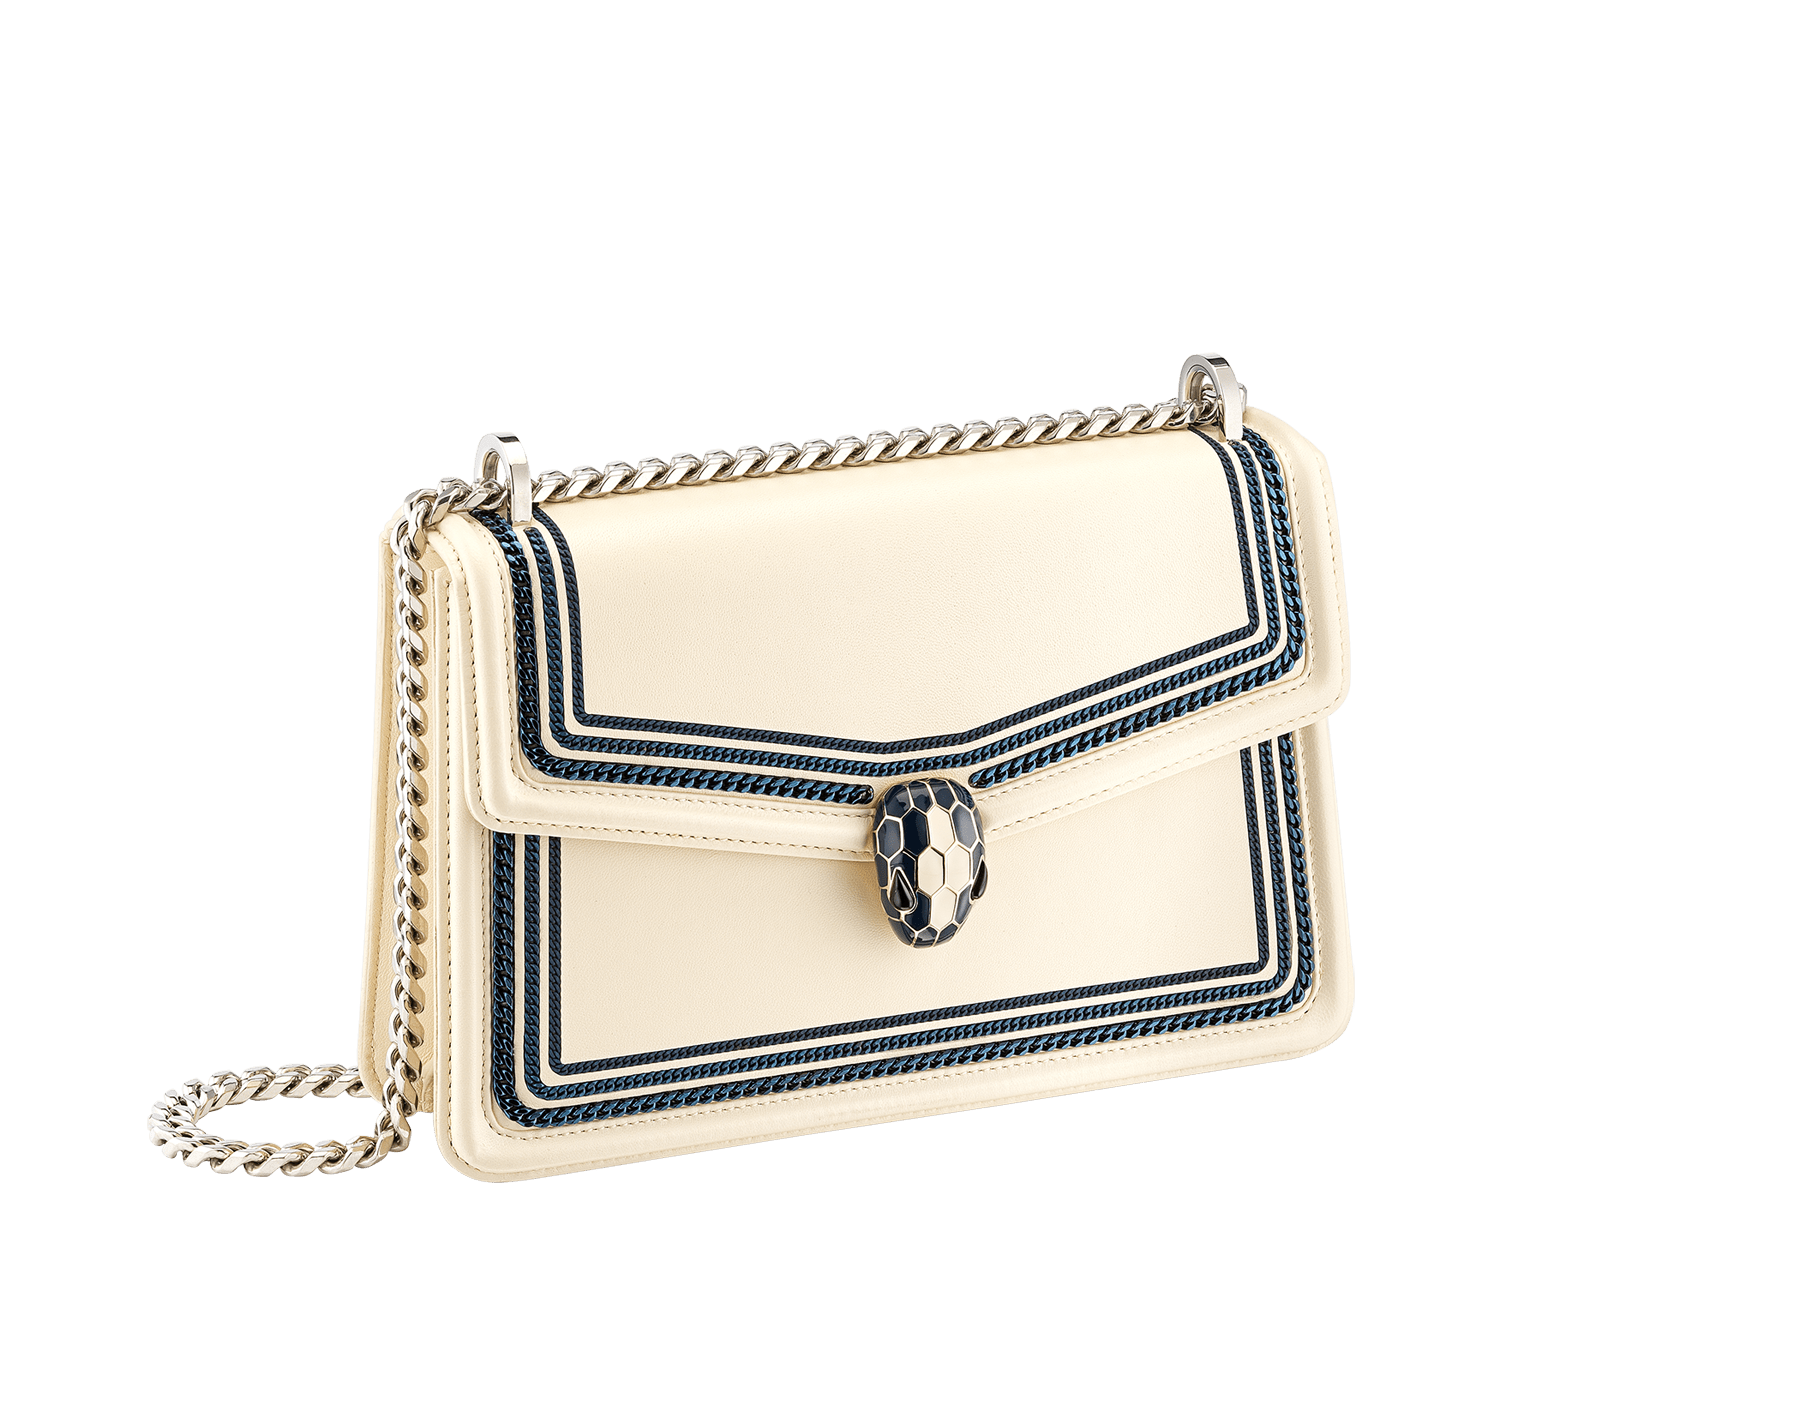 """""""Serpenti Diamond Blast"""" shoulder bag in Ivory Opal white smooth calf leather, featuring a Teal Topaz green 3-Maxi Chain motif, and an Aquamarine light blue nappa leather internal lining. Tempting snakehead closure in palladium-plated brass, embellished with Teal Topaz green and Ivory Opal white enamel, and black onyx eyes. 291173 image 3"""